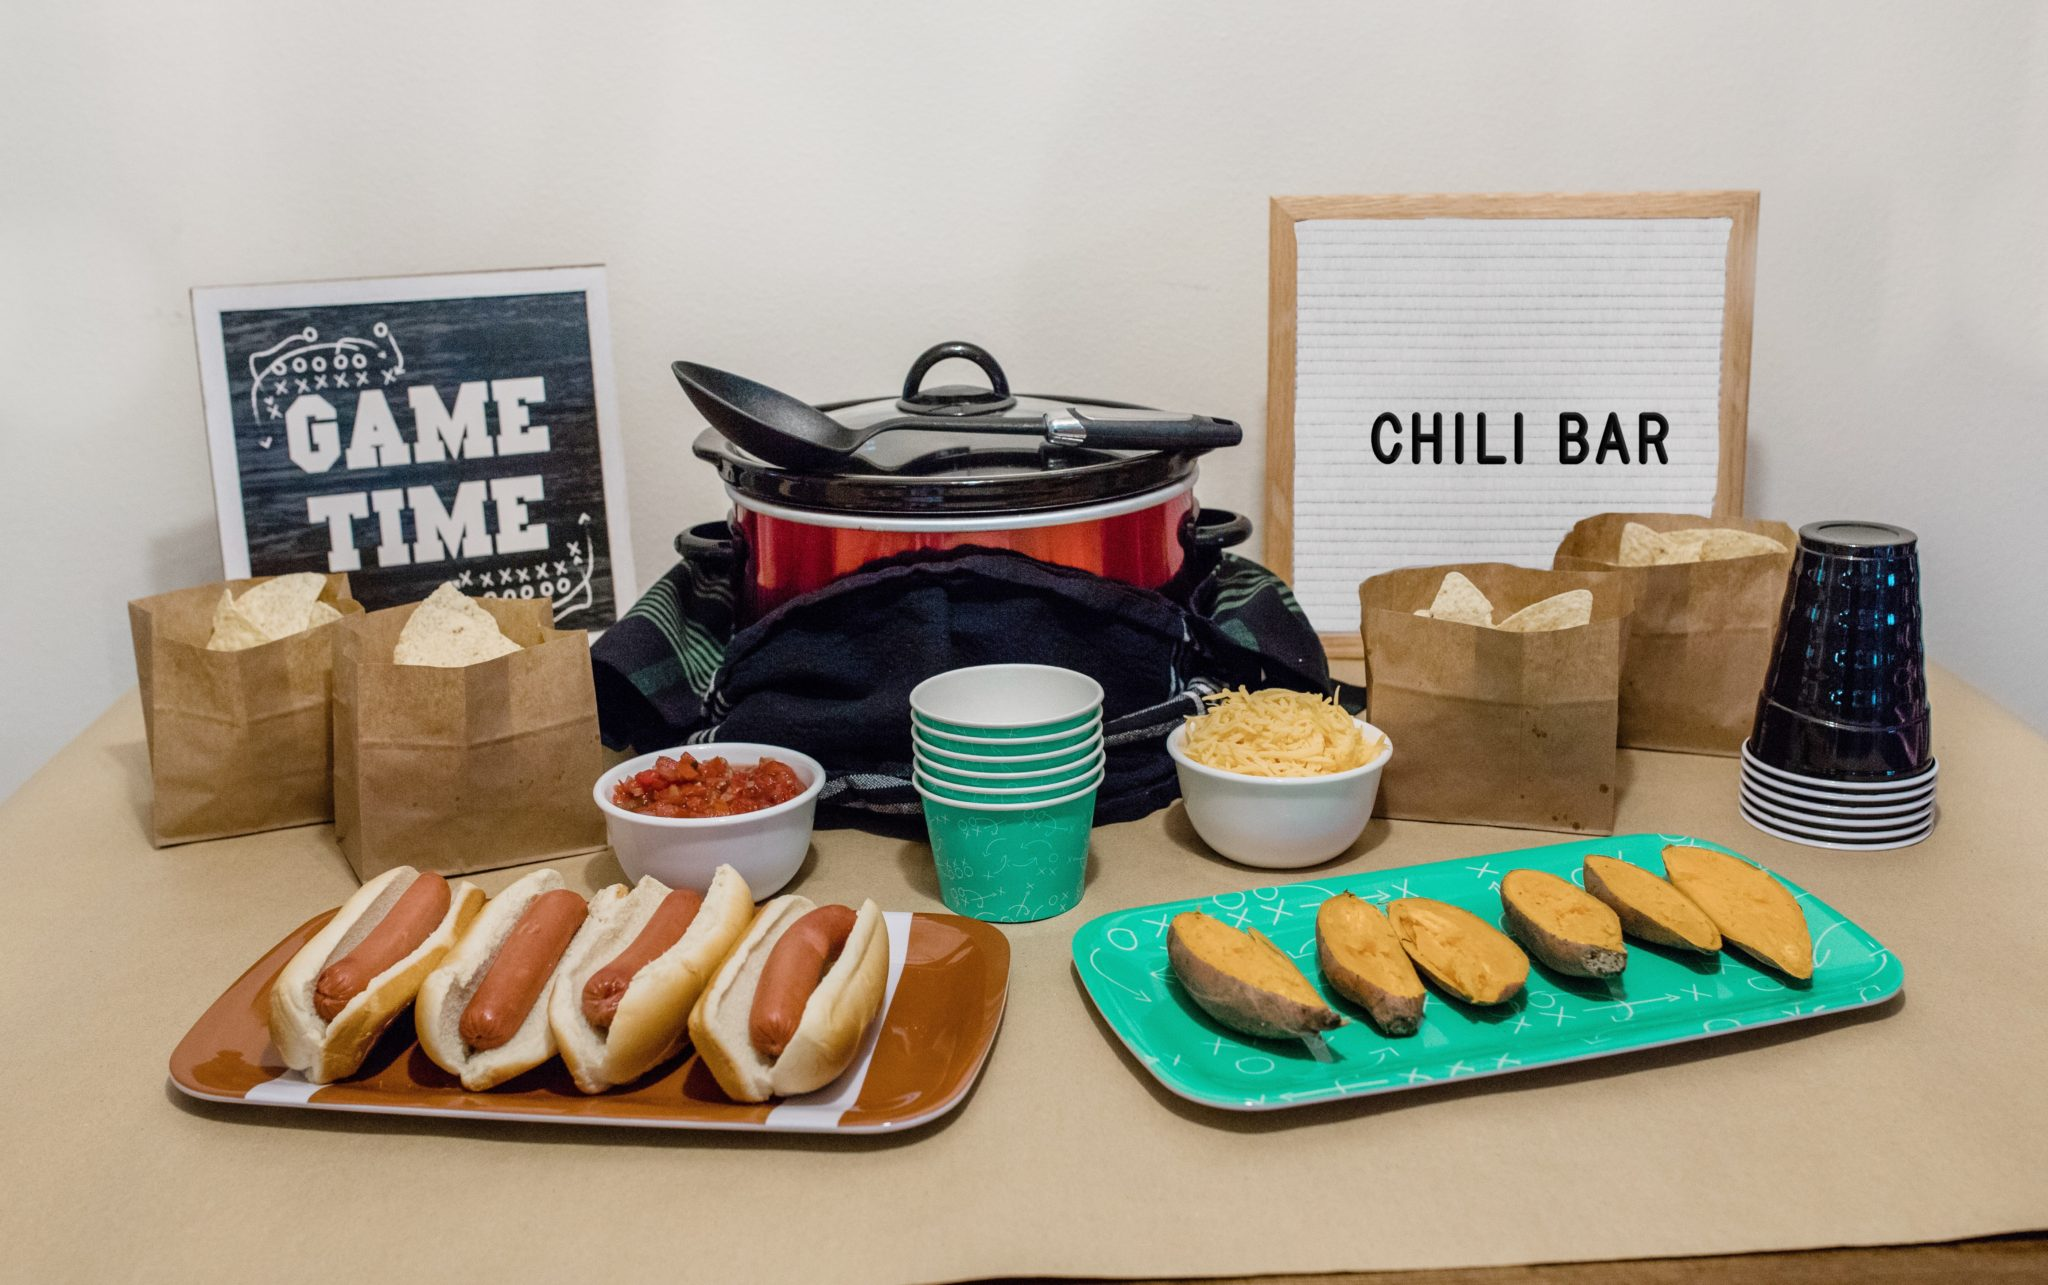 SUPER BOWL GAME DAY TURKEY CHILI BAR